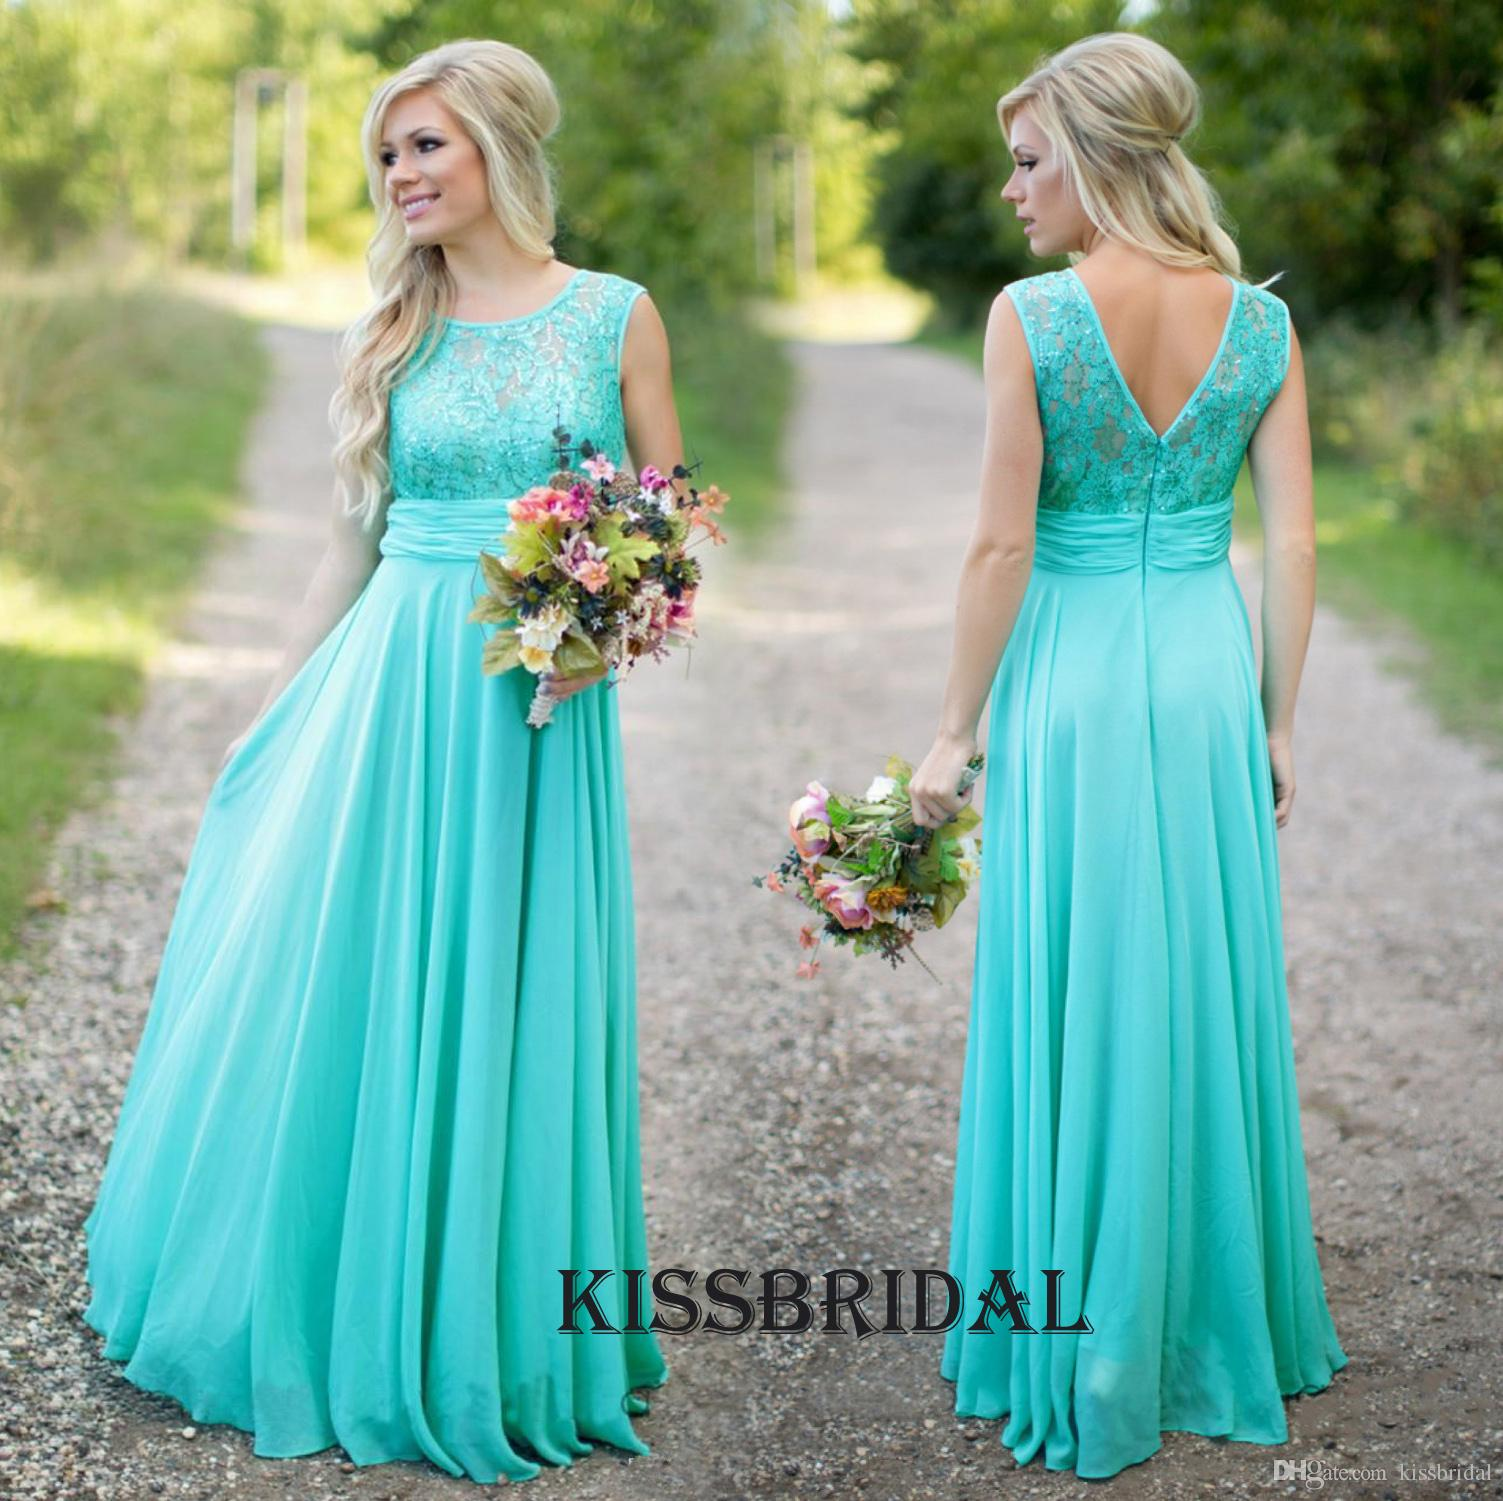 Turquoise long chiffon country bridesmaid dresses 2016 lace jewel turquoise long chiffon country bridesmaid dresses 2016 lace jewel neck zipper back a line floor ombrellifo Choice Image